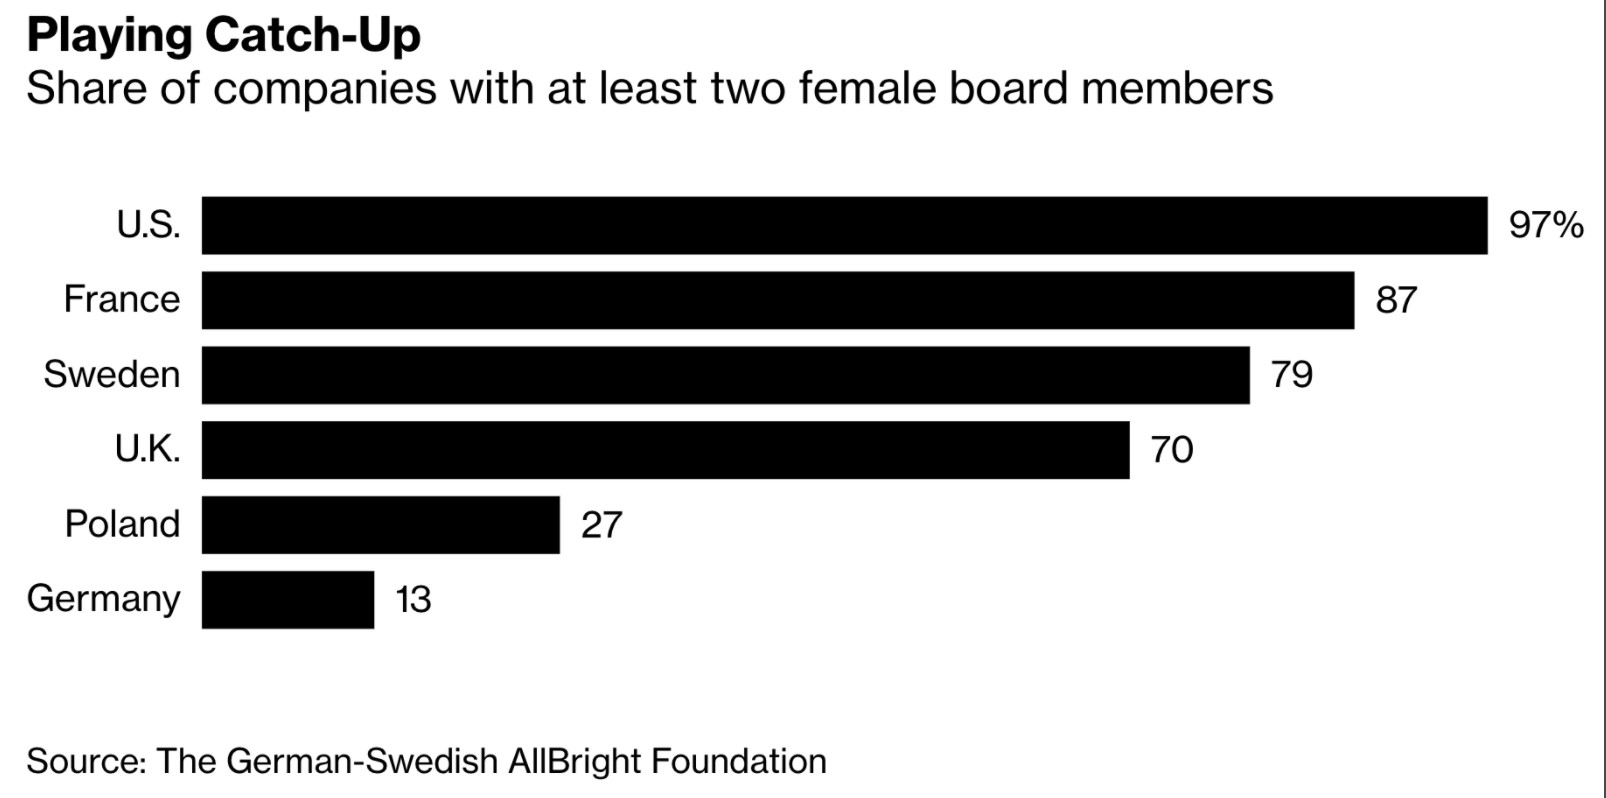 Share of companies with at least two female board members